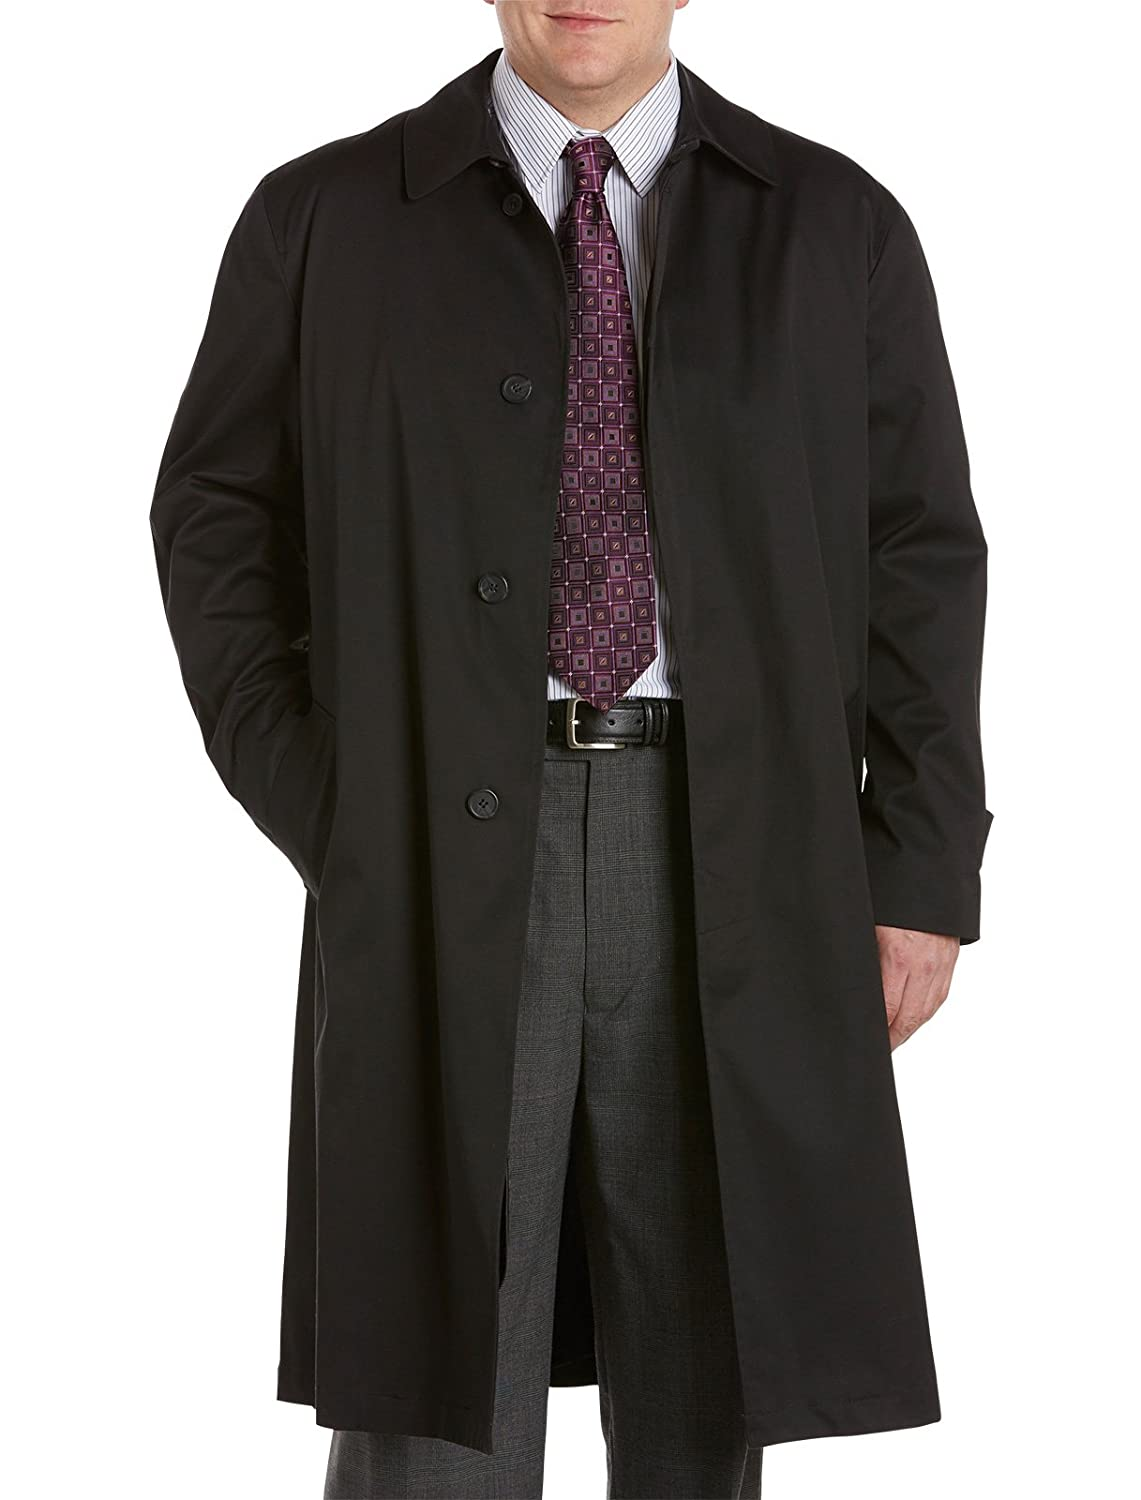 Jean Paul Germain Big and Tall Buster Three-Season Overcoat 90211 Buster Black